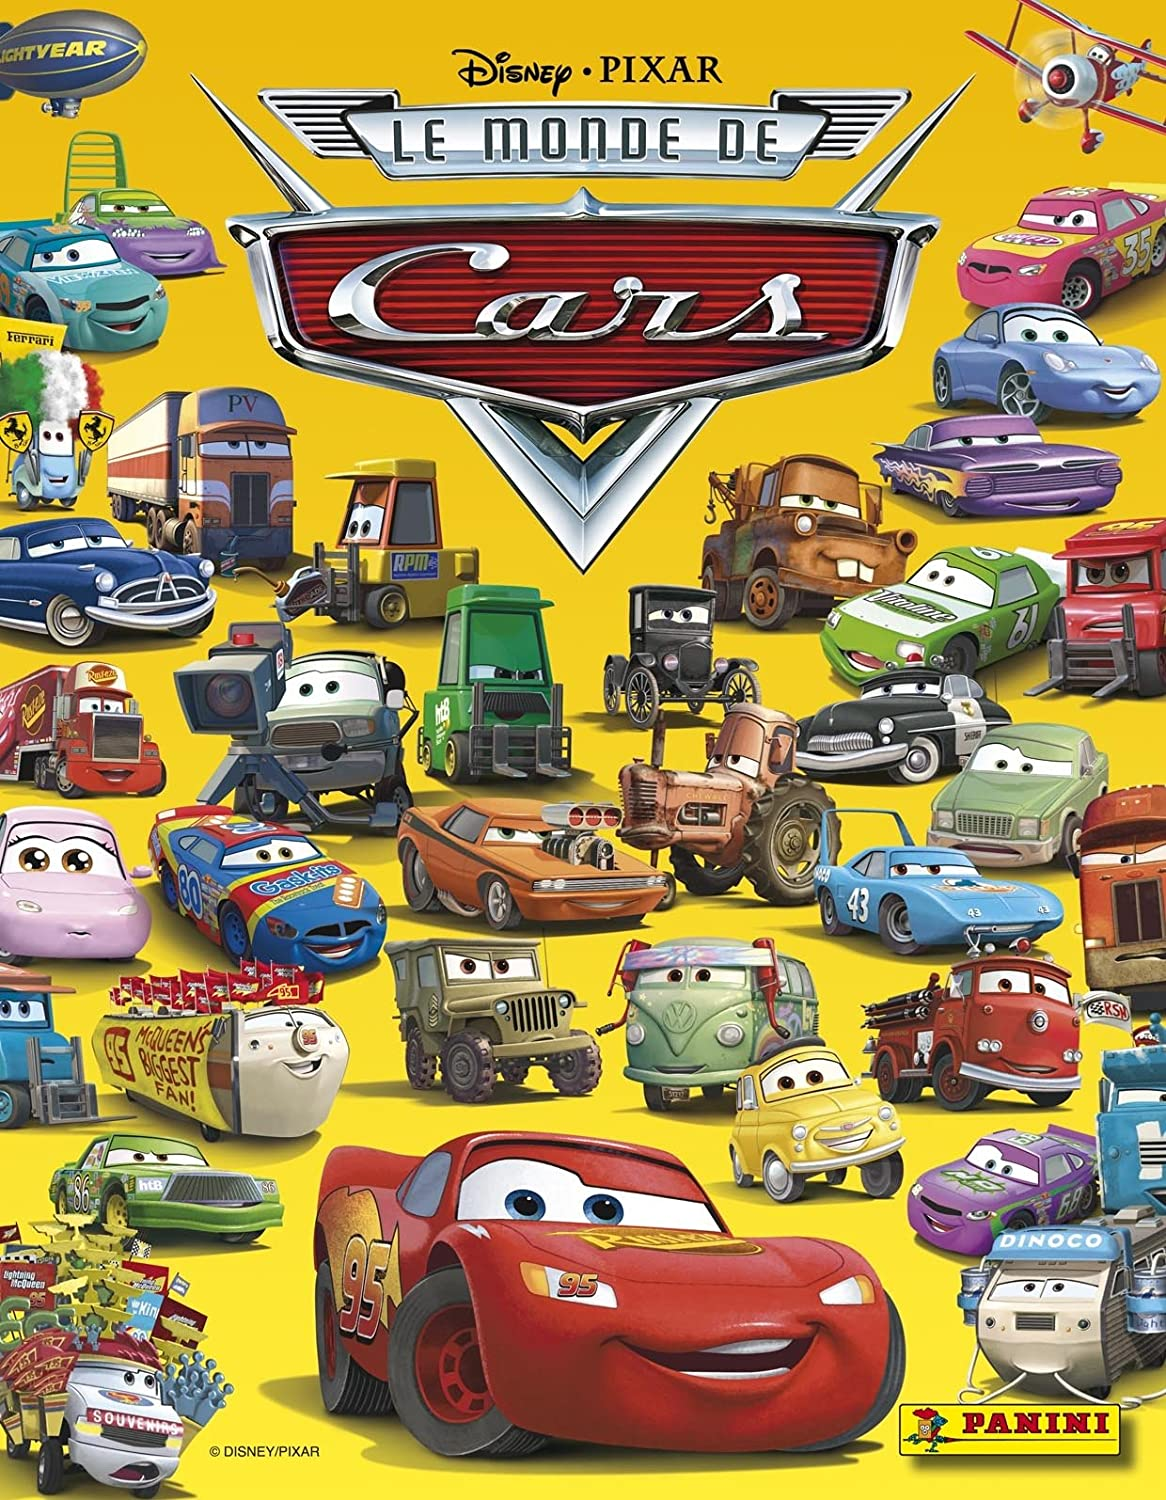 amazoncom disney pixar the world of cars sticker book with wall poster stickers are sold separately and are also made by panini toys games